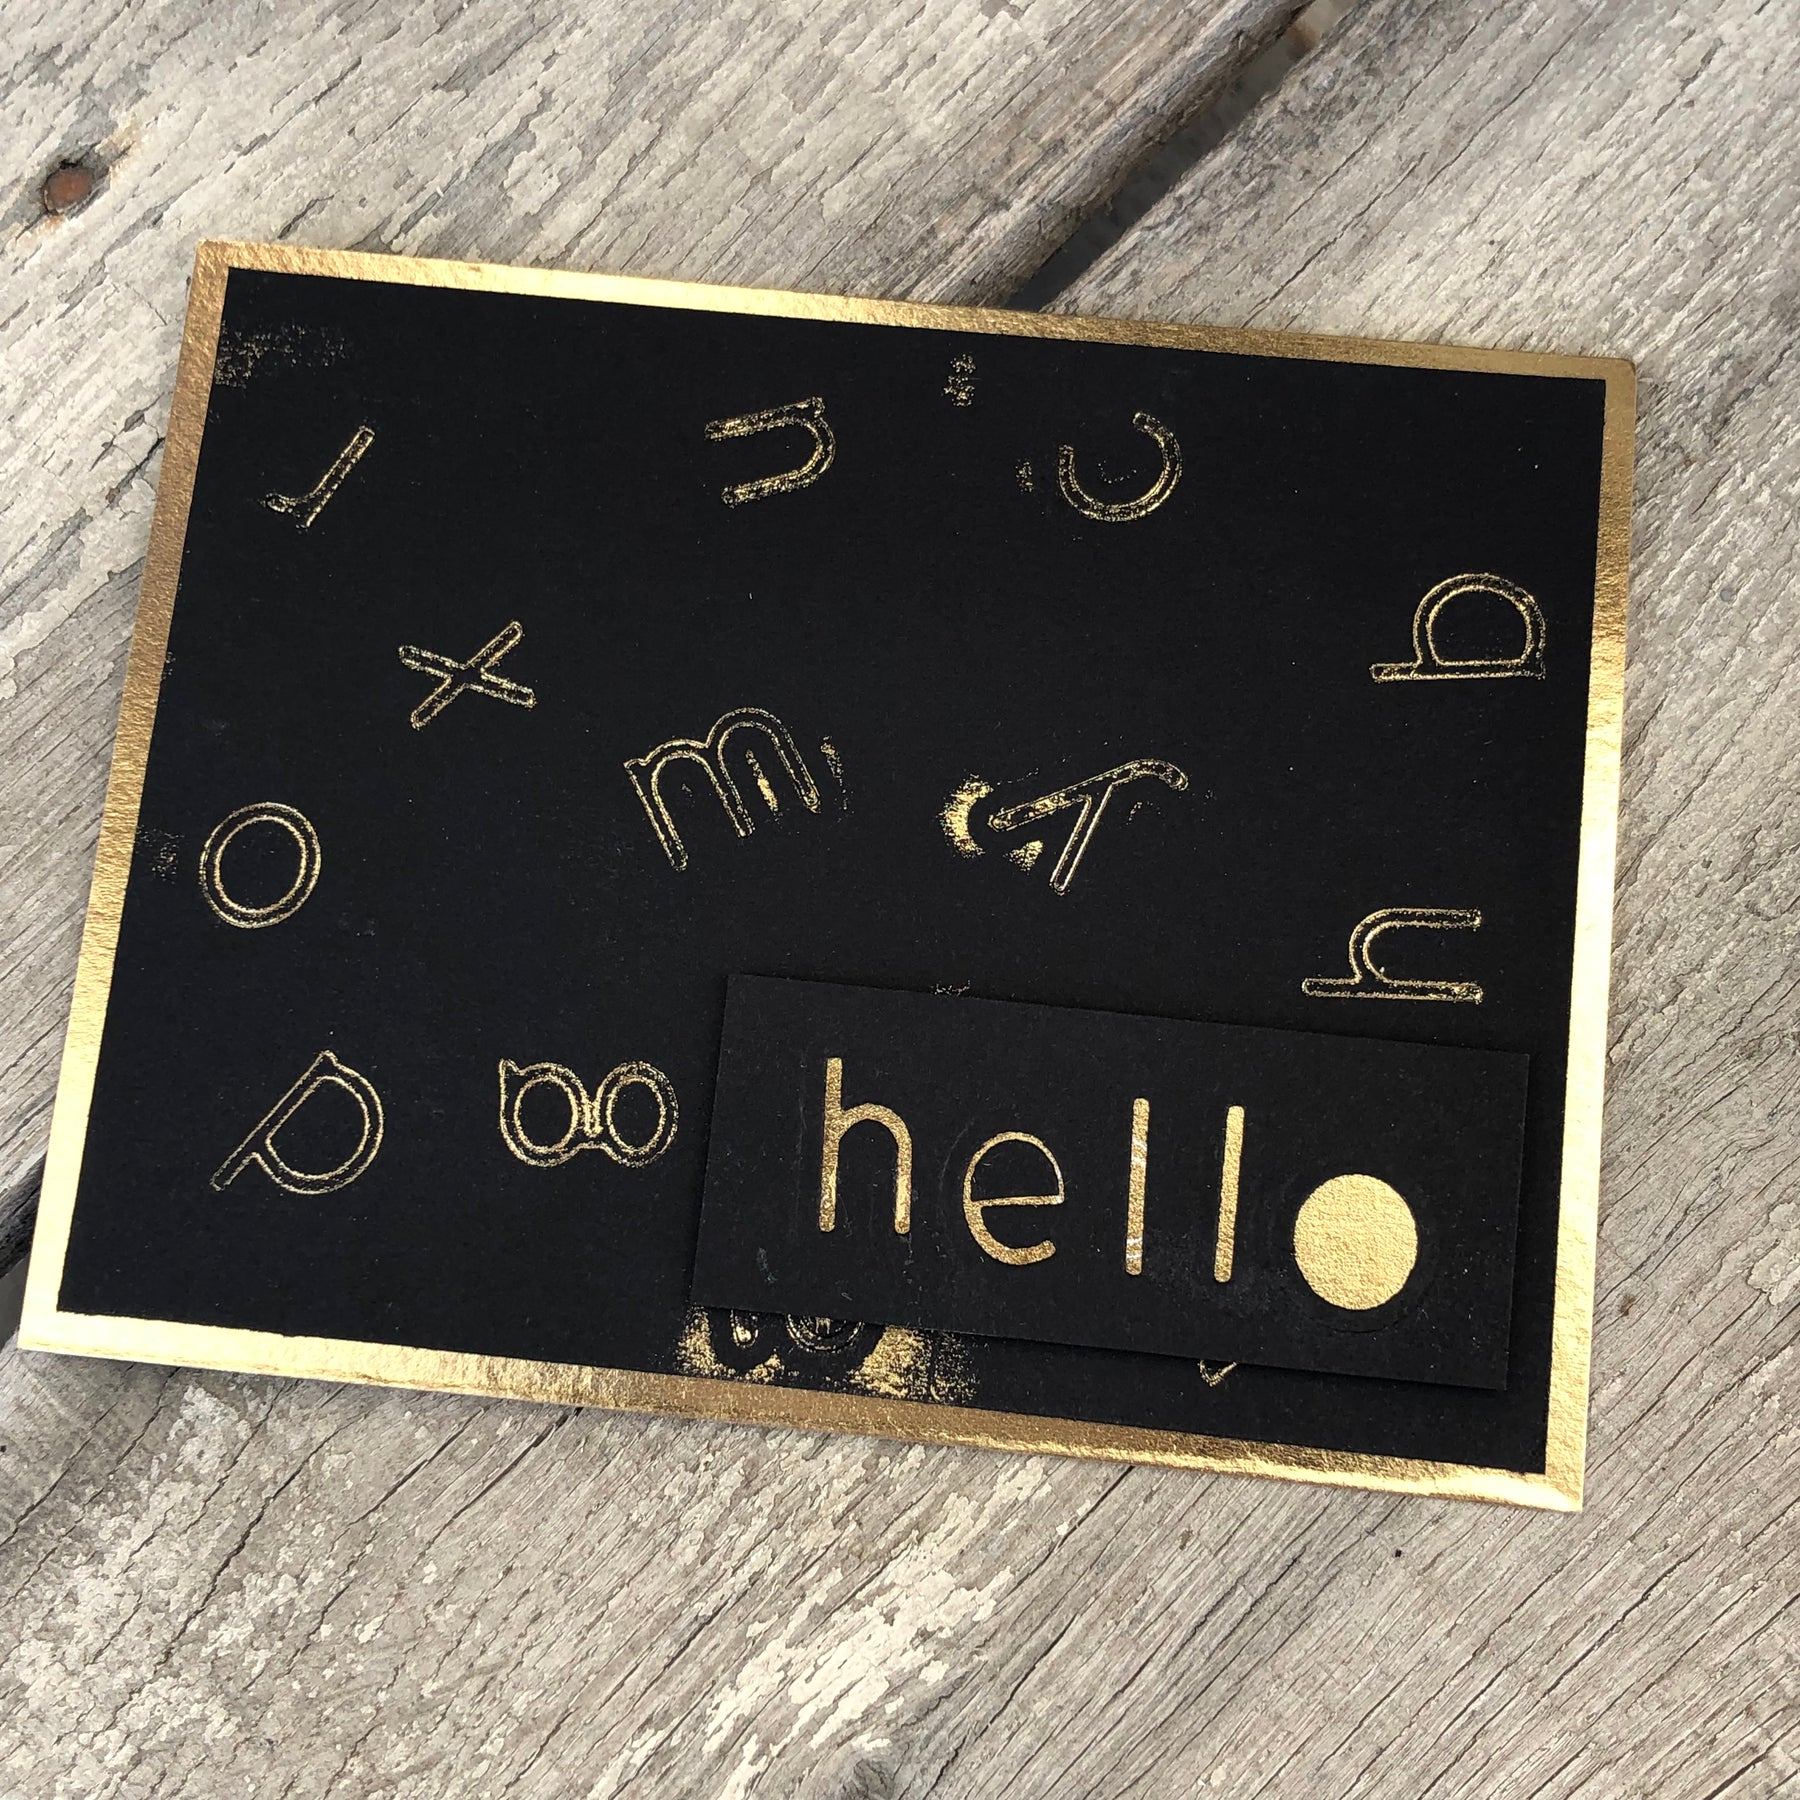 Foiled card with alphabet dies.